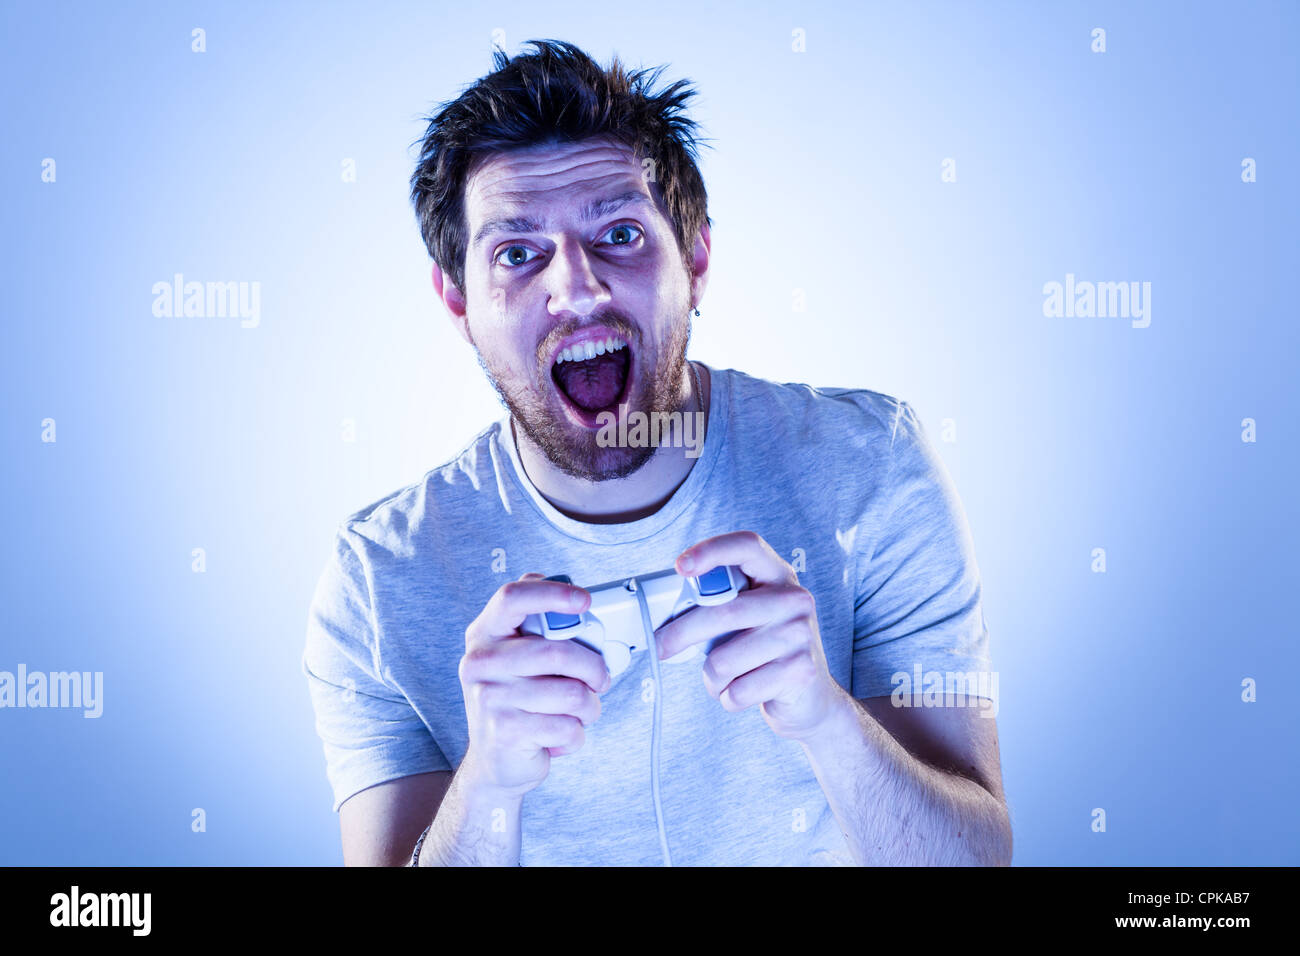 Amazed Man Playing Videogames with Gamepad - Stock Image